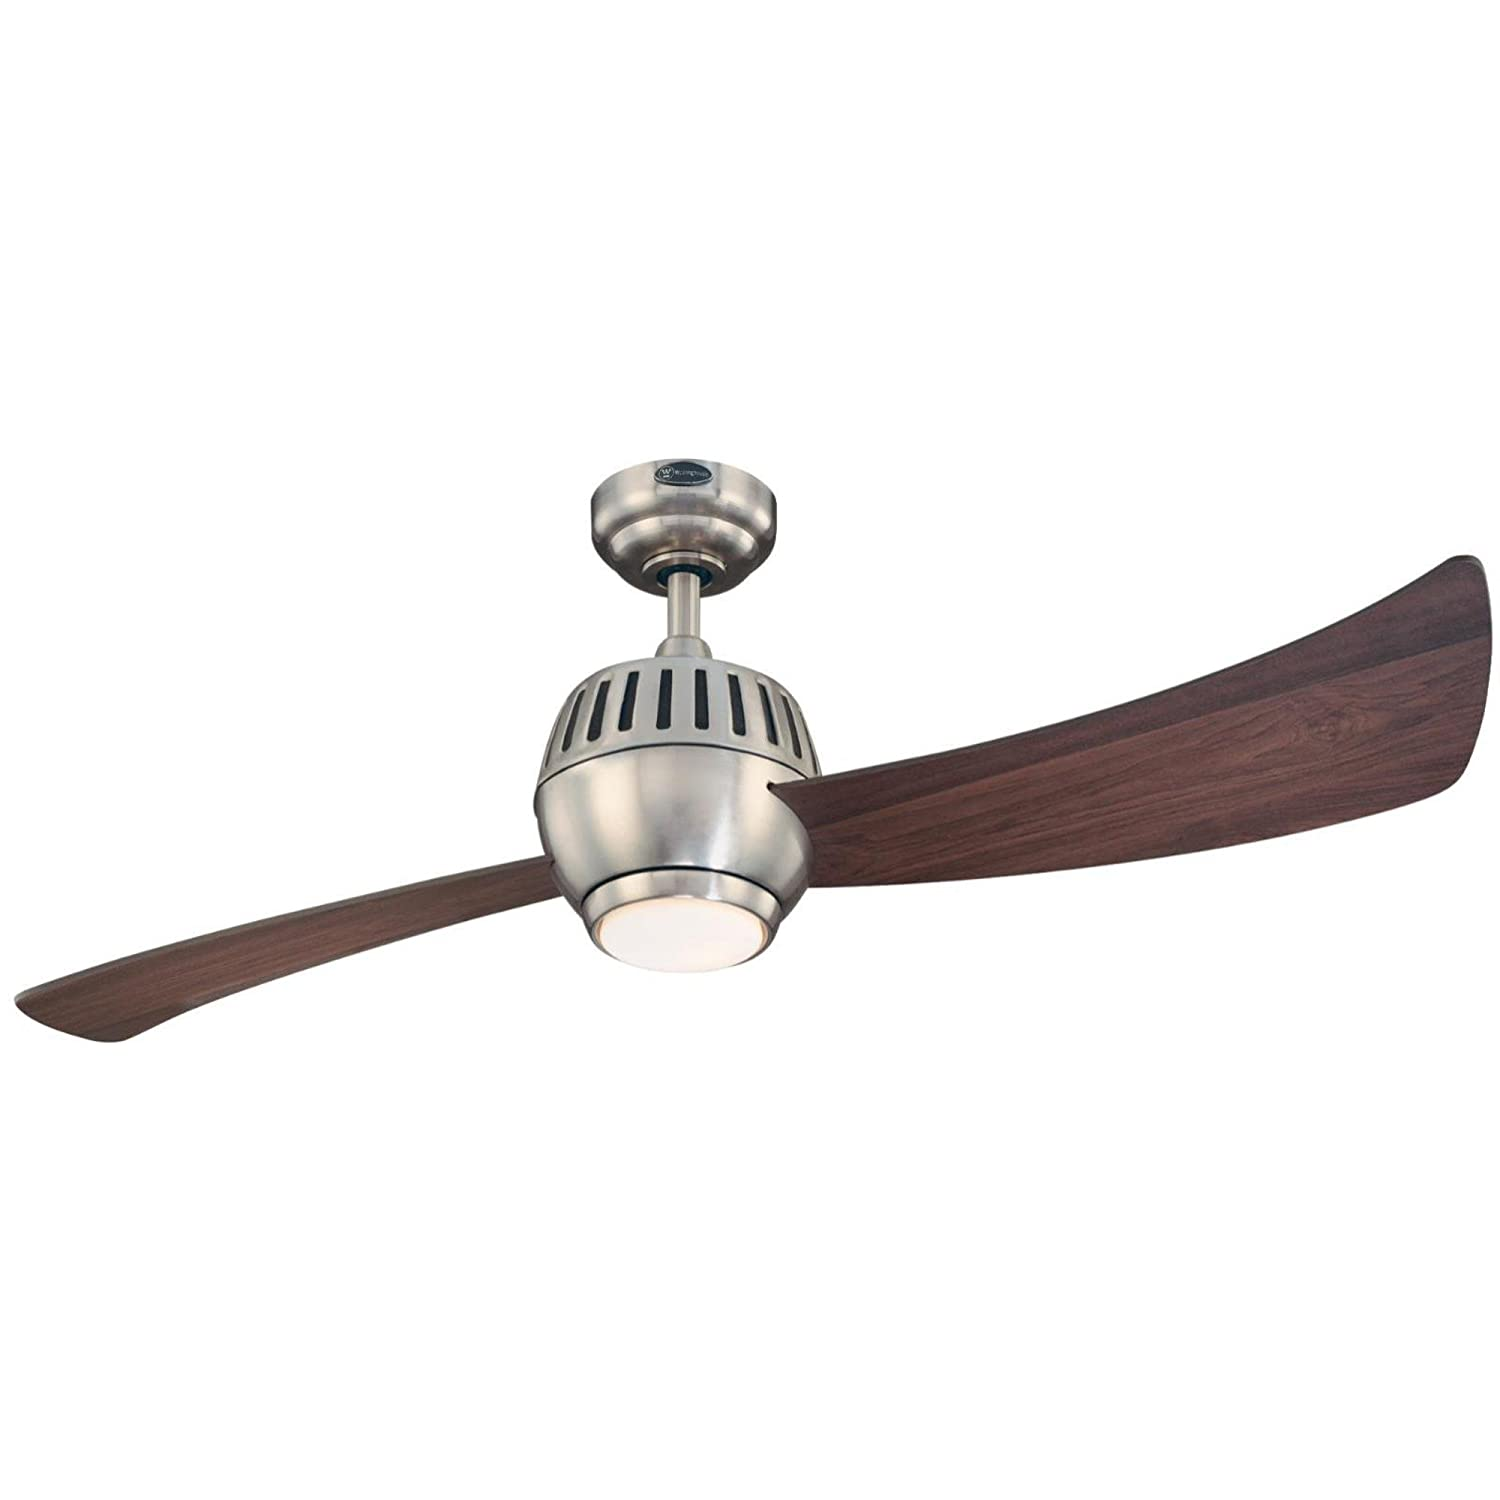 Westinghouse 7852400 Sparta One Light 52 Inch Two Blade Indoor Ceiling Fan Capacitor On Wiring Diagram For A Triple Switch Brushed Nickel With Opal Glass Reversible